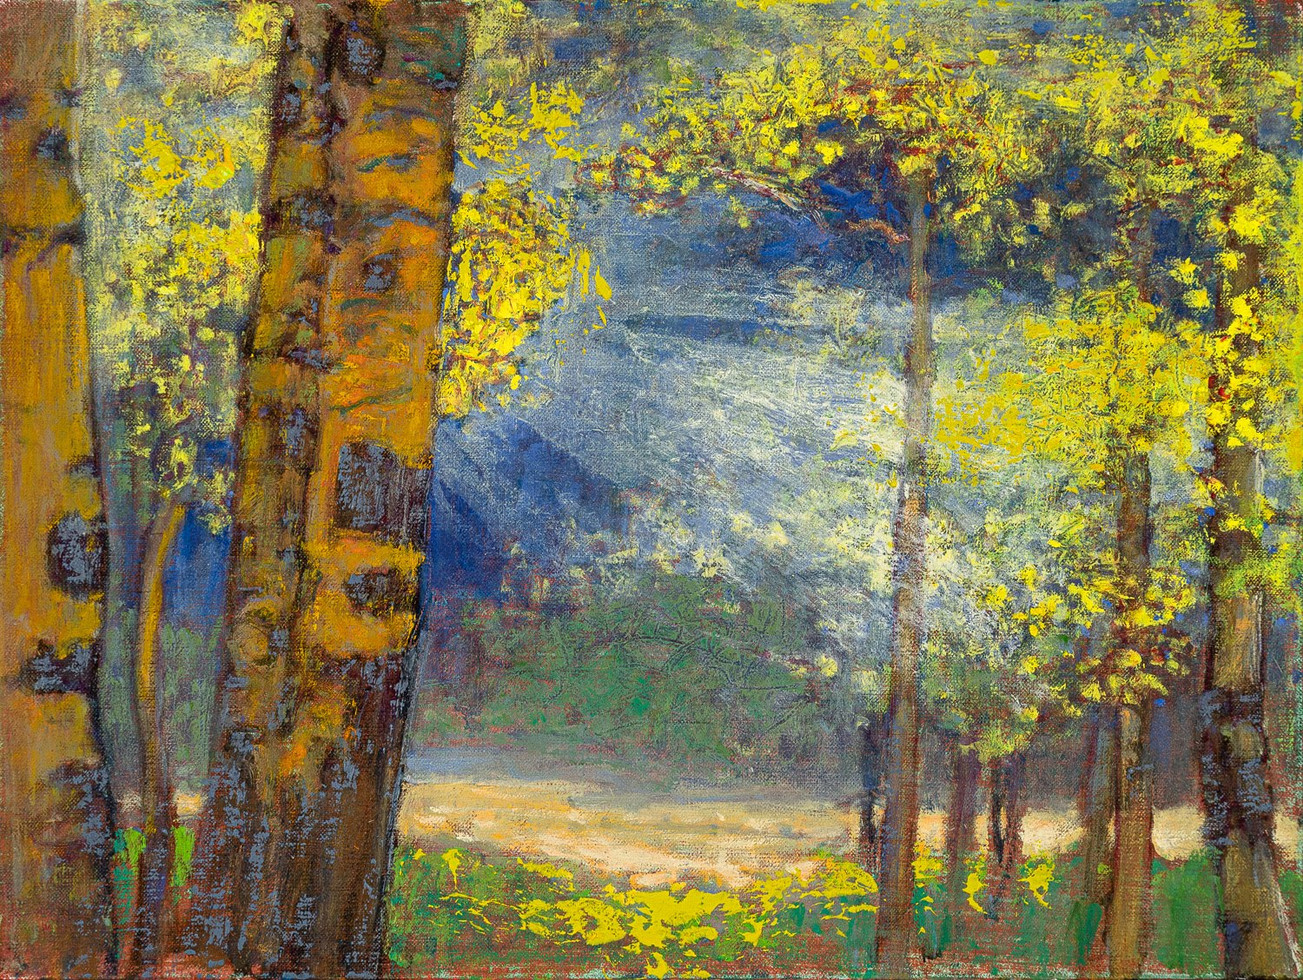 'Ray of Light through the Trees'